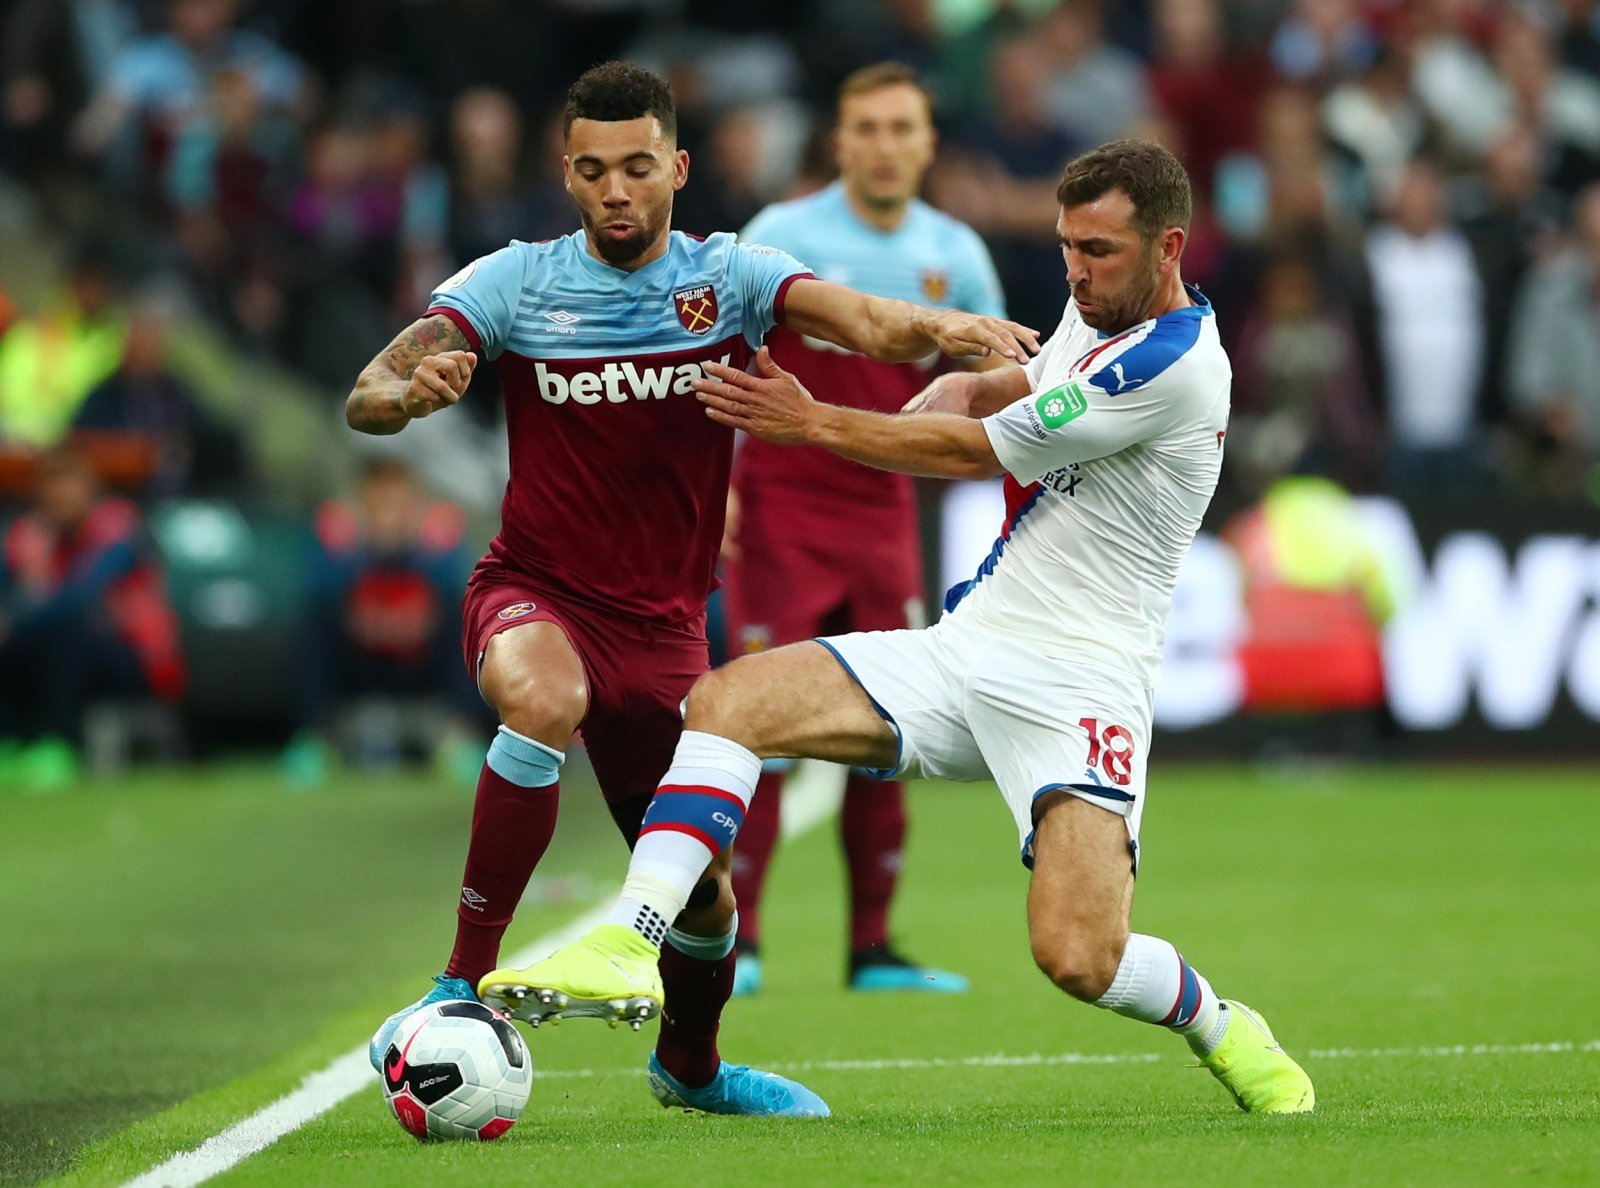 West Ham United: Ryan Fredericks put in a solid performance despite Crystal Palace loss